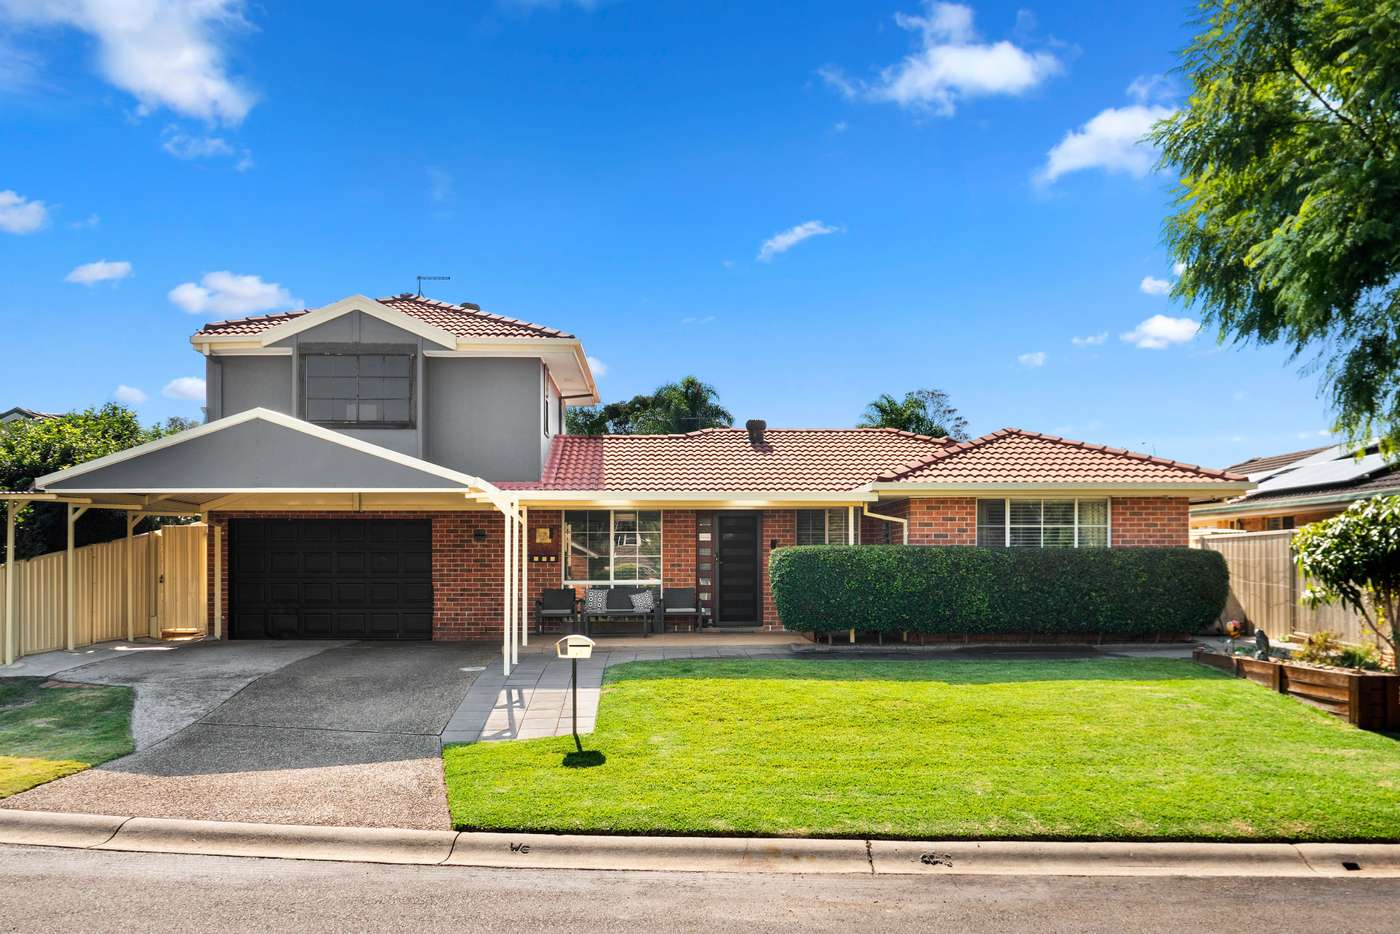 Main view of Homely house listing, 19 Bonzer Place, Glendenning NSW 2761